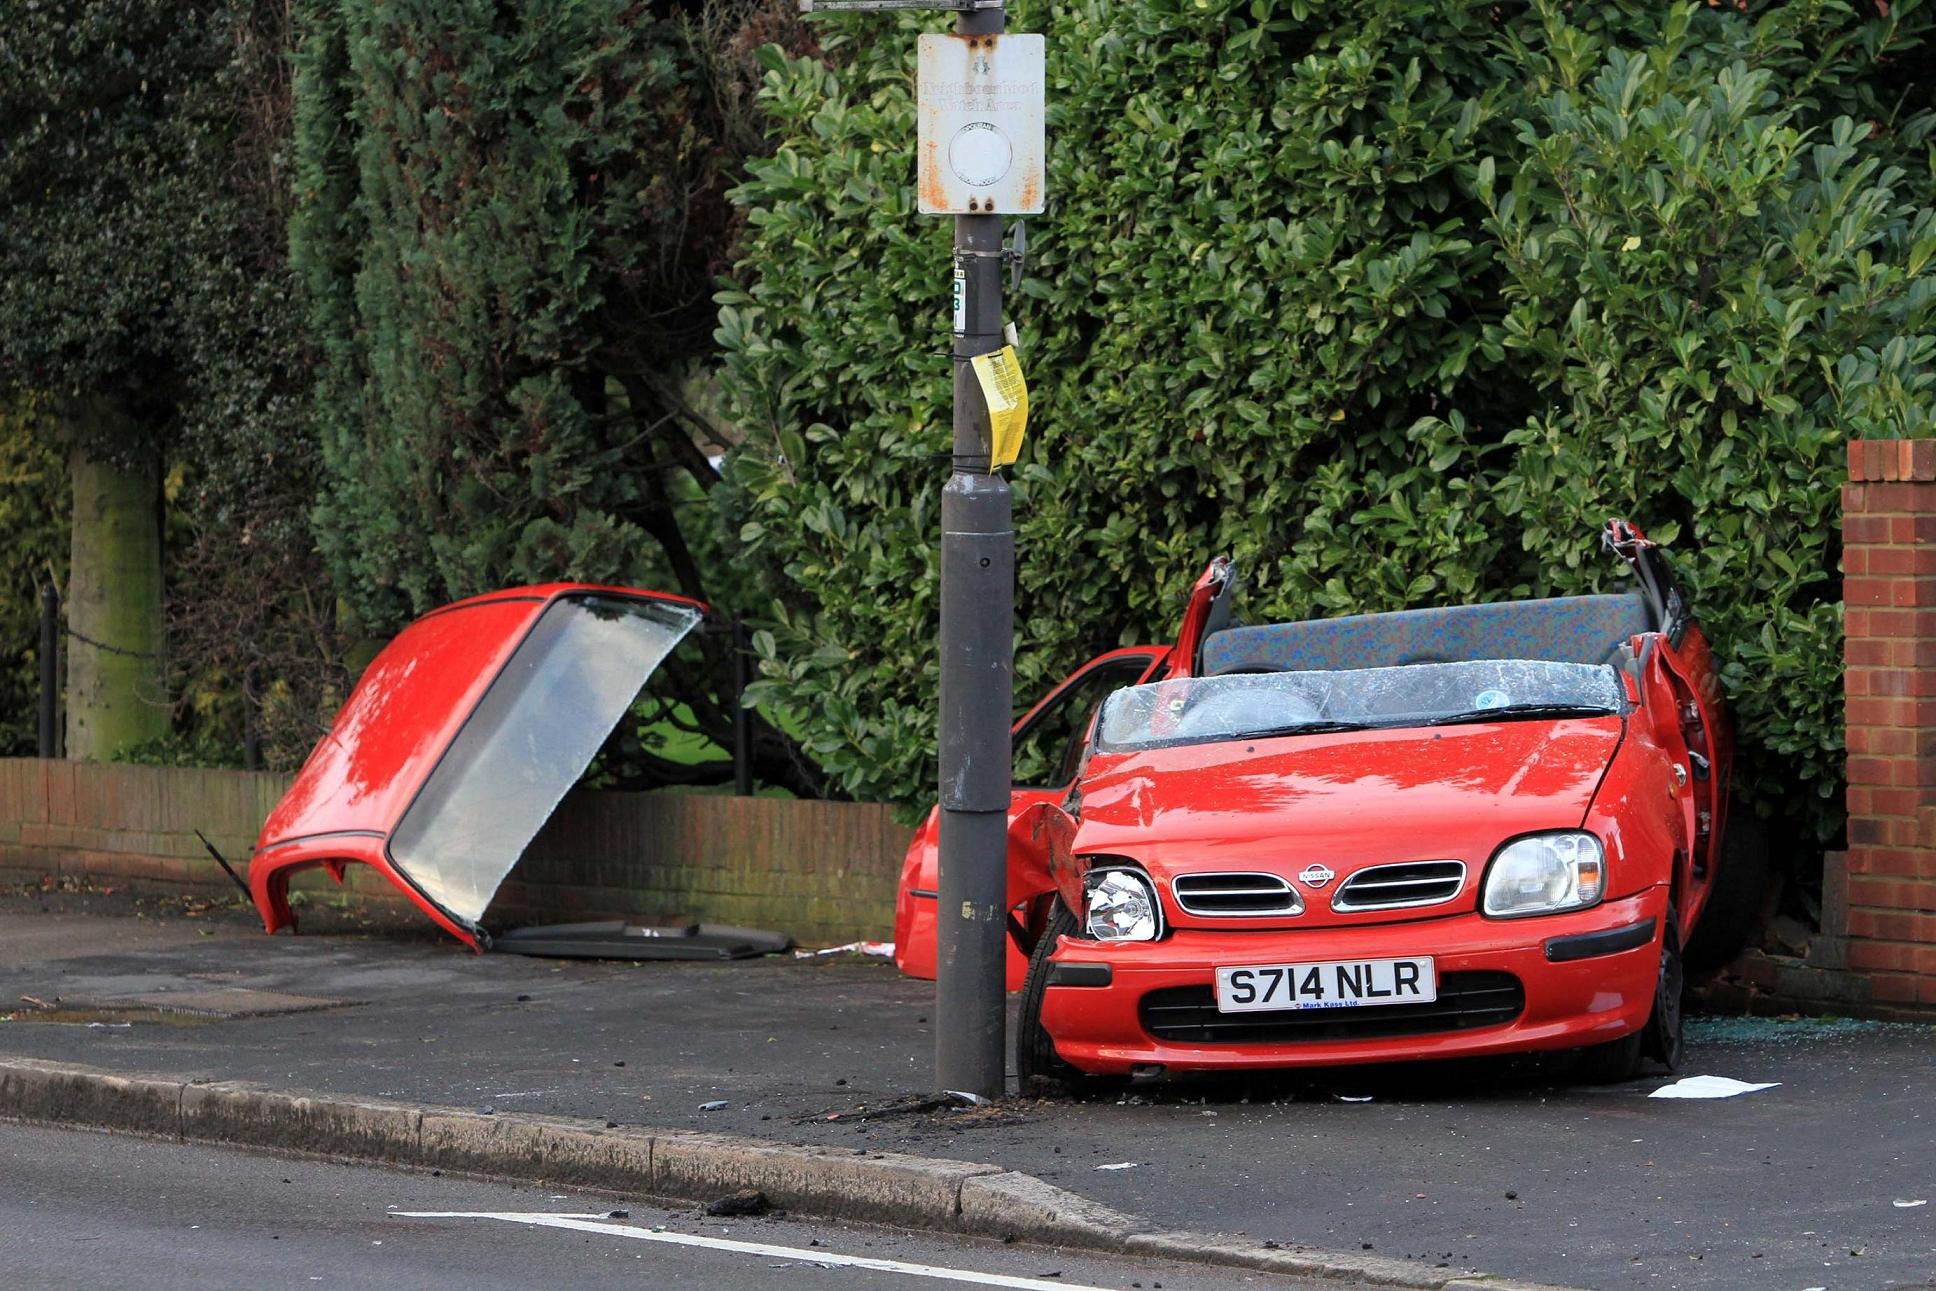 Road closed after car smashes into lamppost